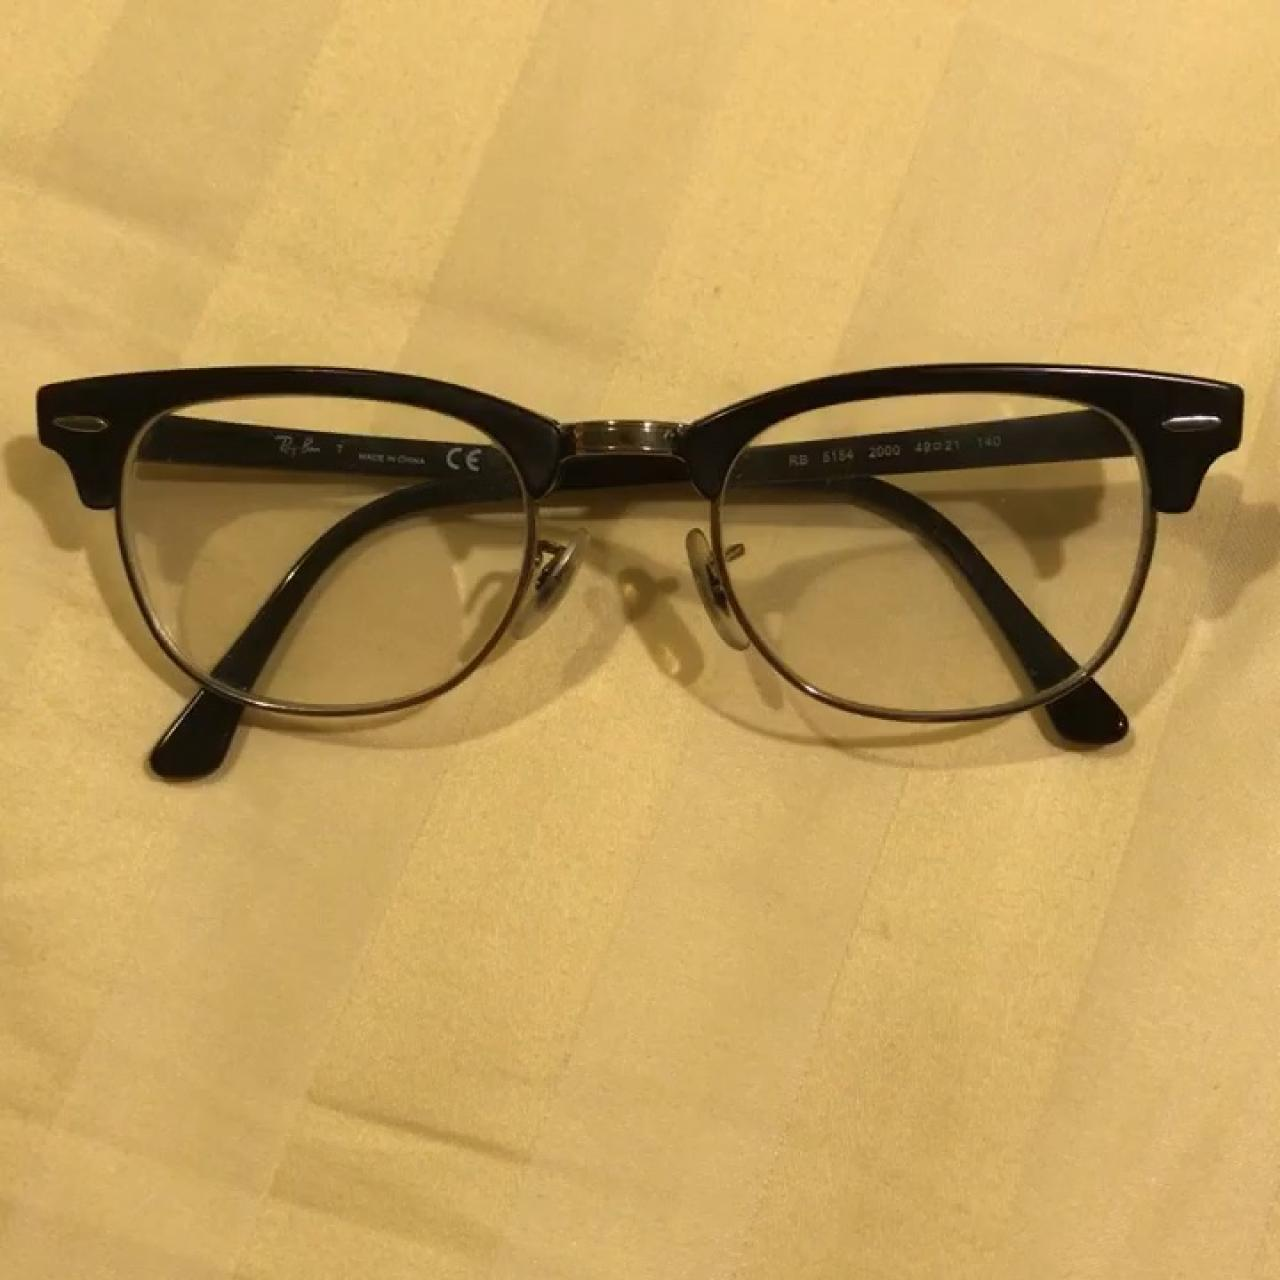 323d444293 PRICE LOWERED! AUTHENTIC ray ban clubmaster glasses! they my - Depop